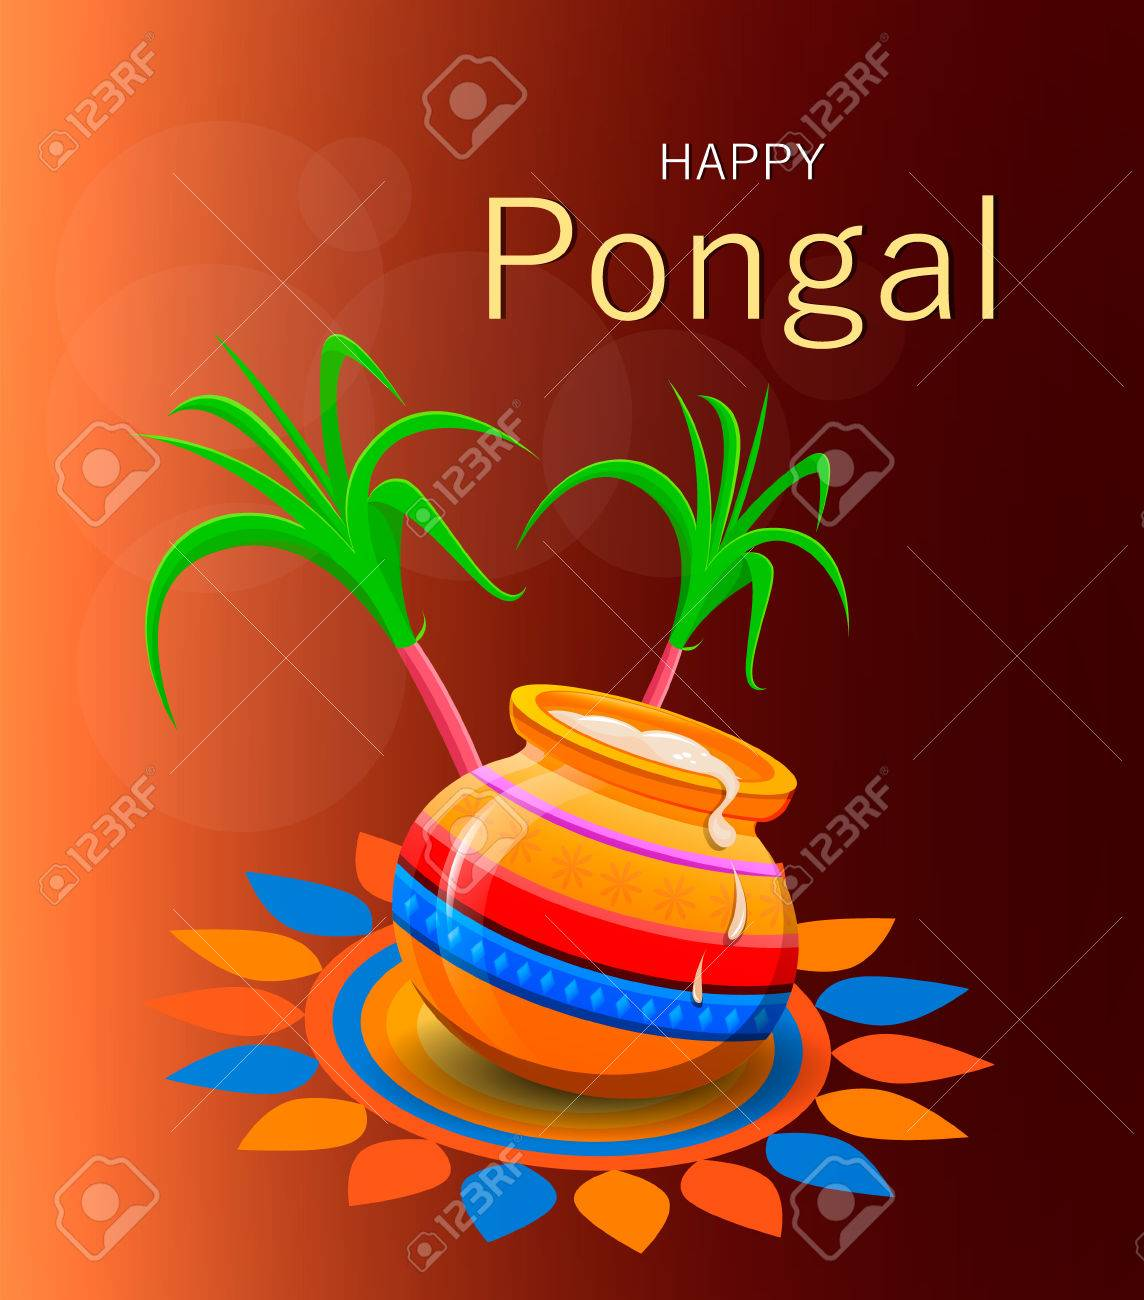 Happy pongal greeting card on brown background vector illustration happy pongal greeting card on brown background vector illustration stock vector 69258821 m4hsunfo